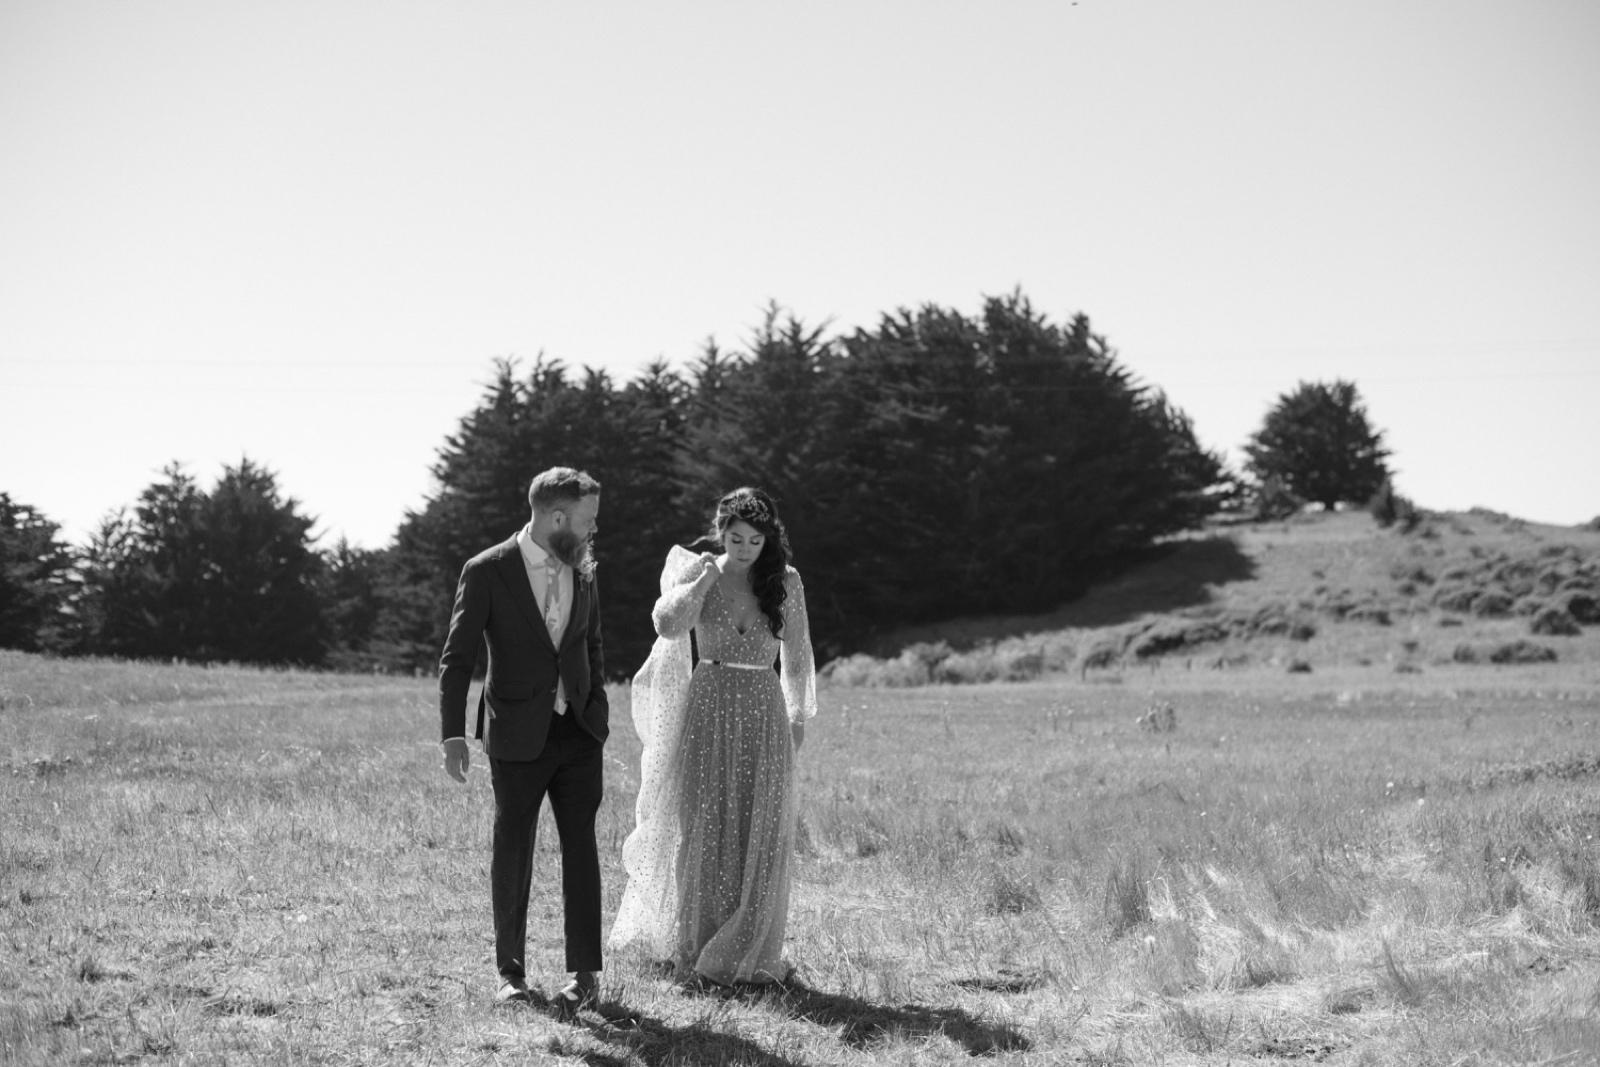 Mendocino_Wedding_Cuffeys_Cove050.JPG